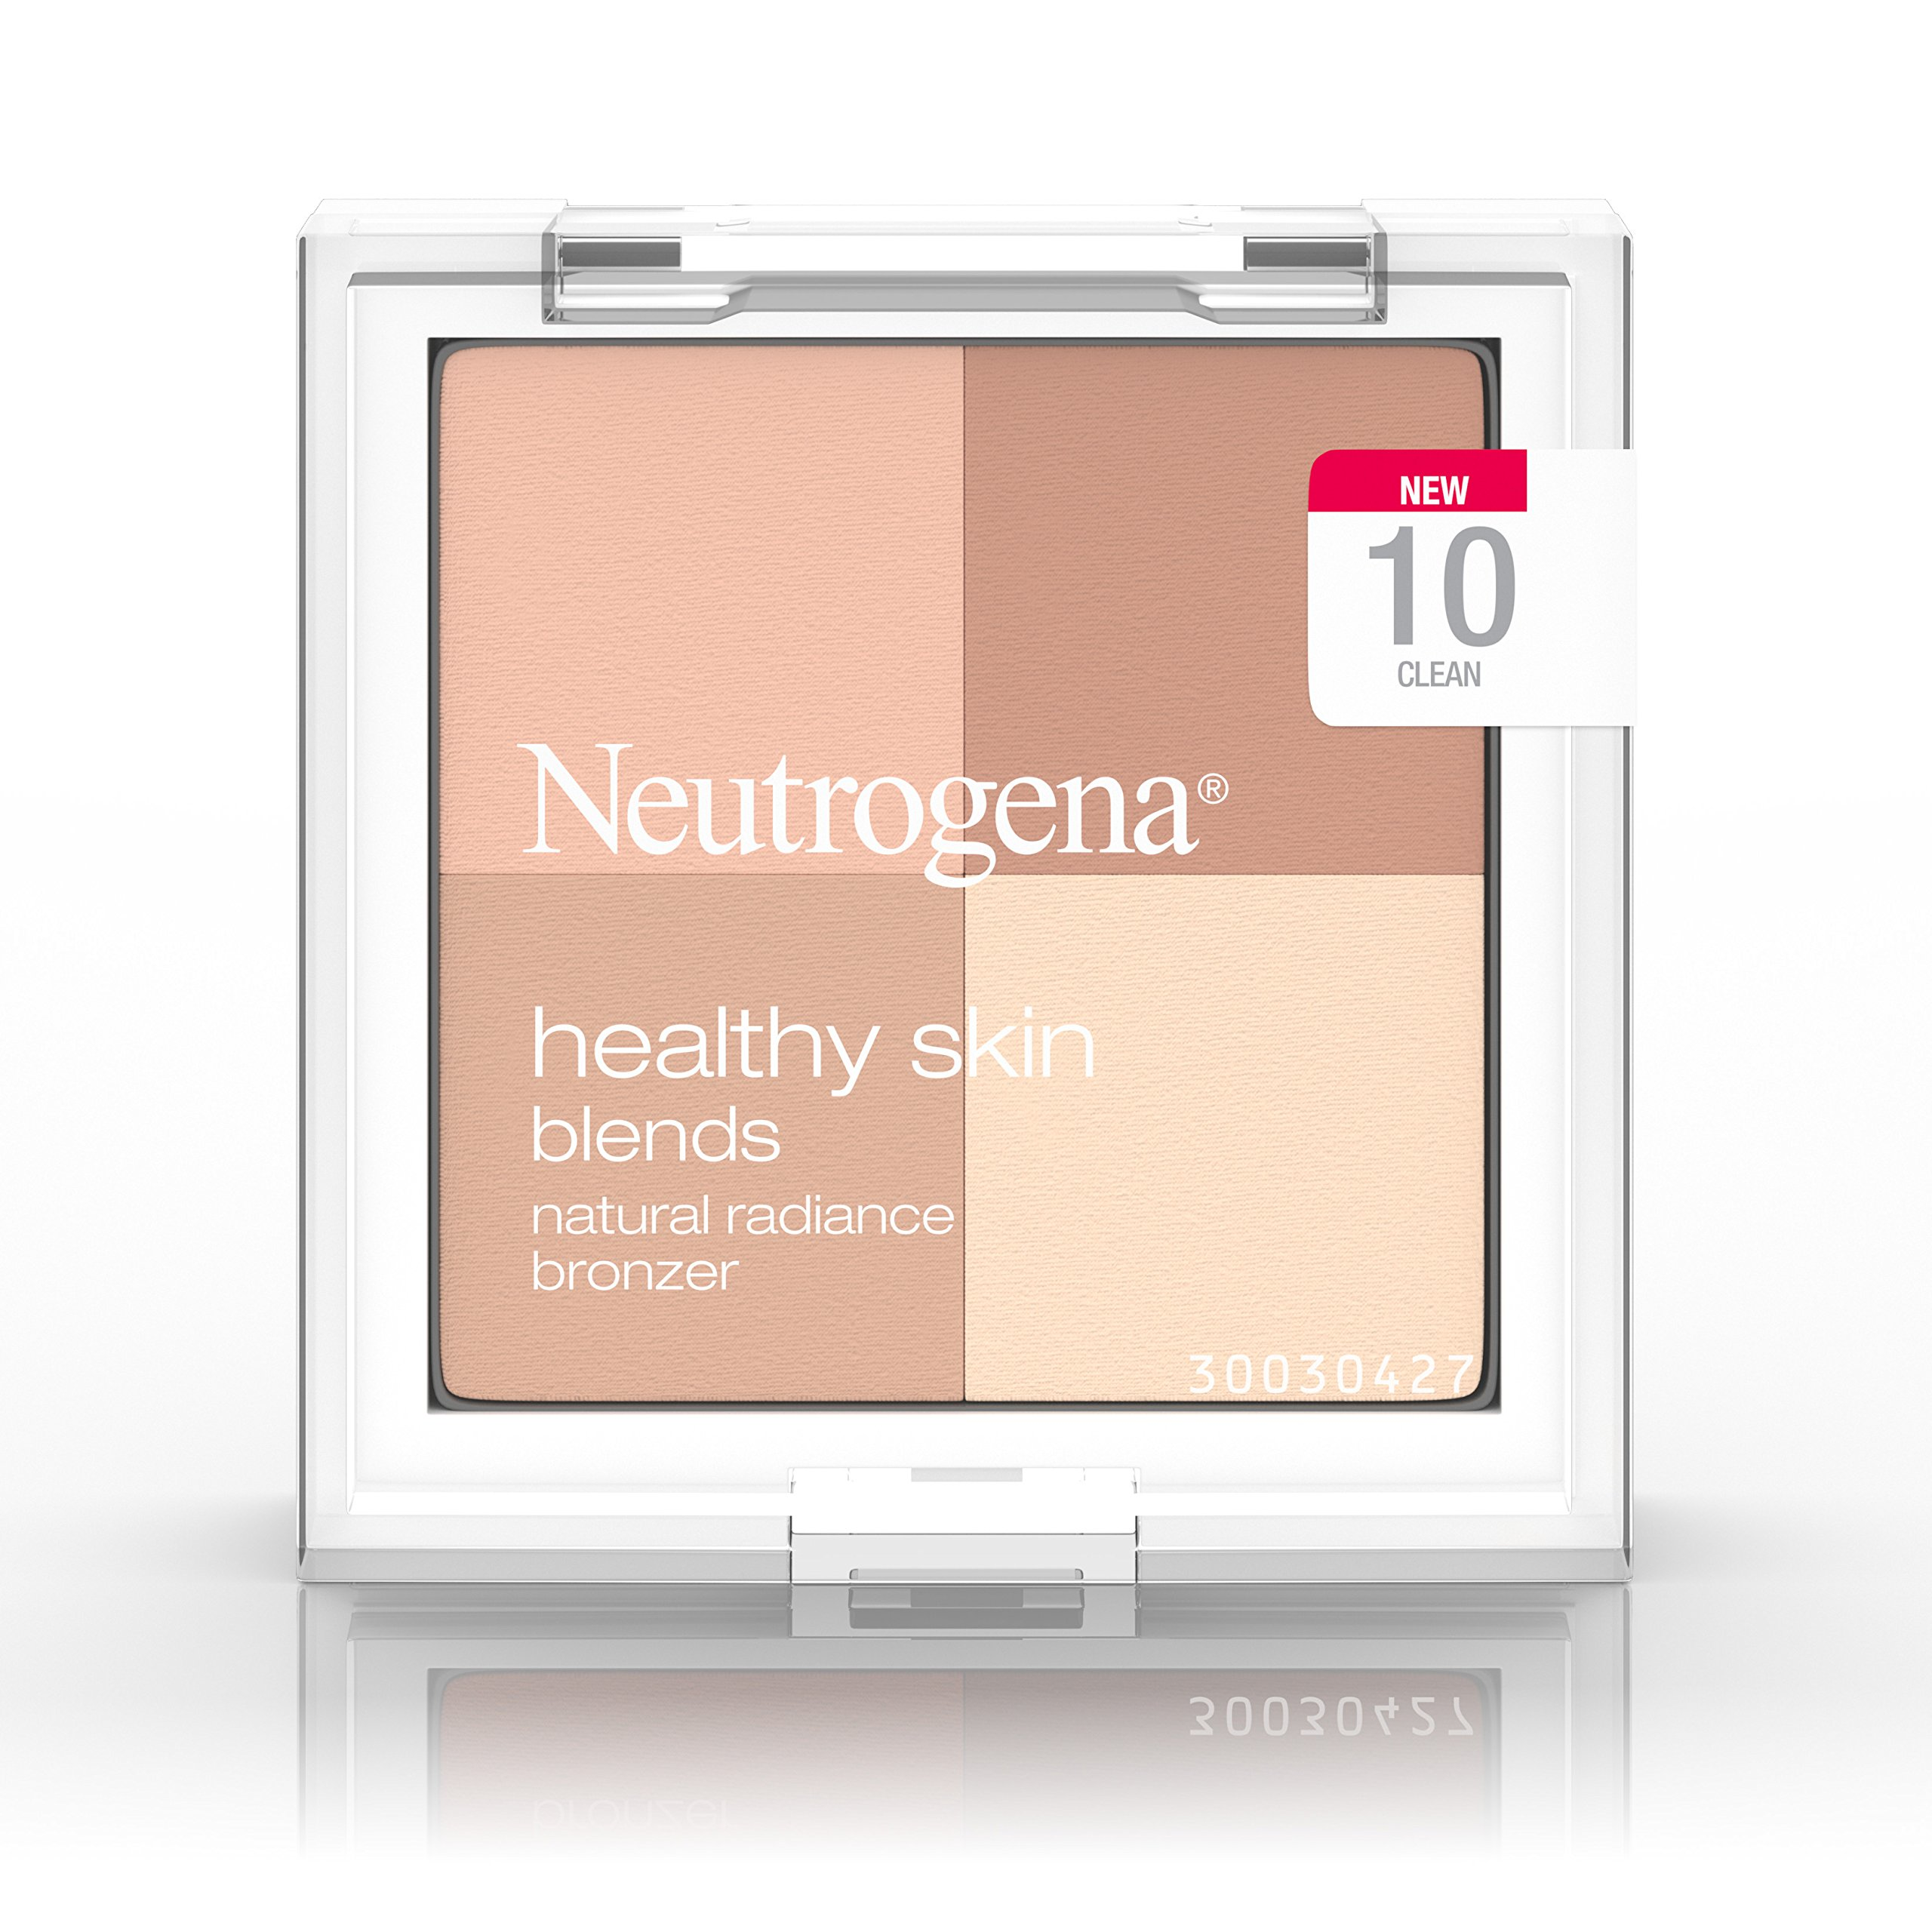 Neutrogena Healthy Skin Blends, 10 Clean, Face Makeup.3 Oz.